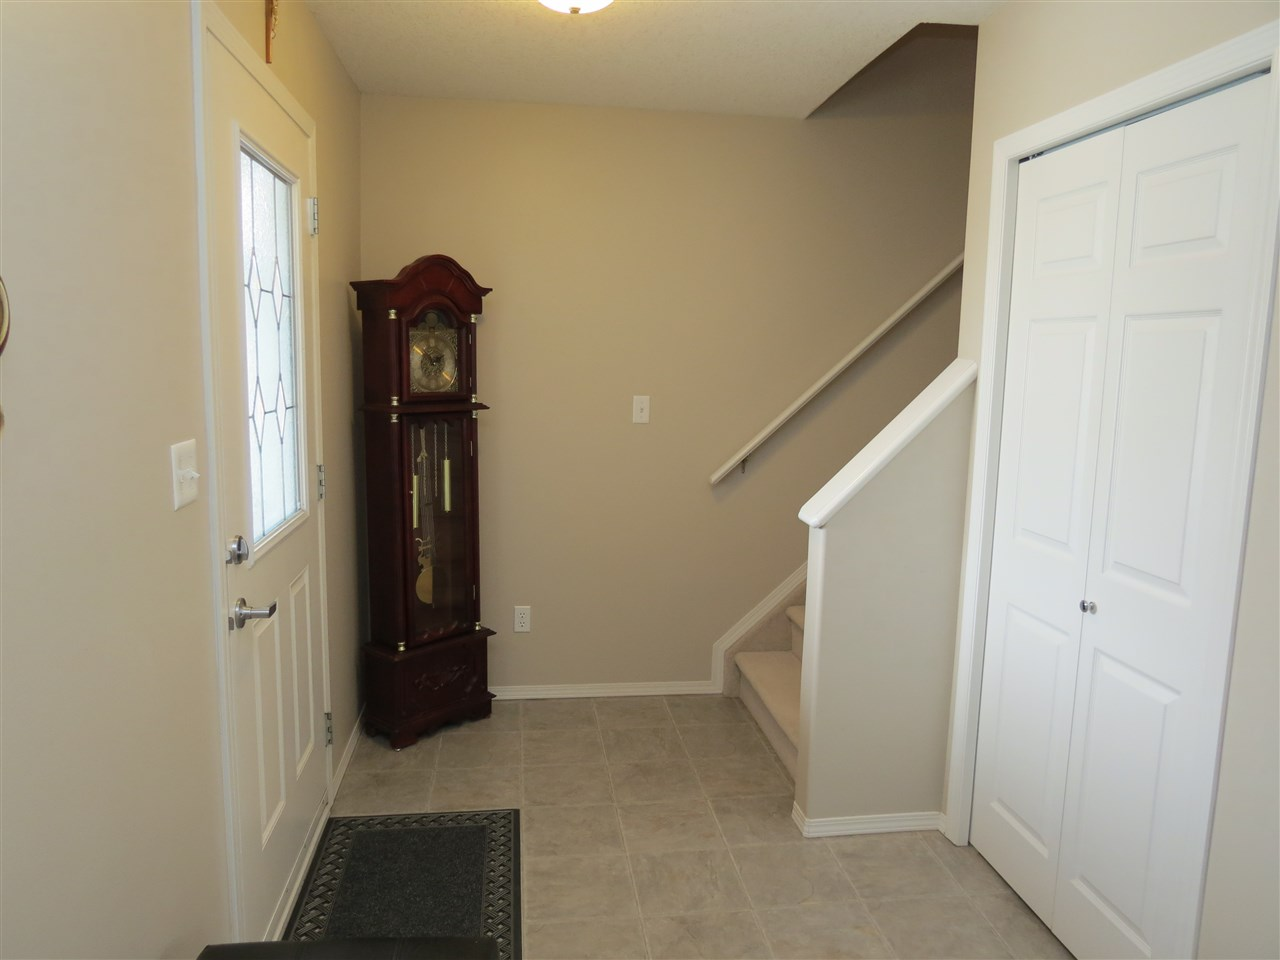 Photo 2: 9429 80 Avenue: Morinville House Half Duplex for sale : MLS(r) # E4059755